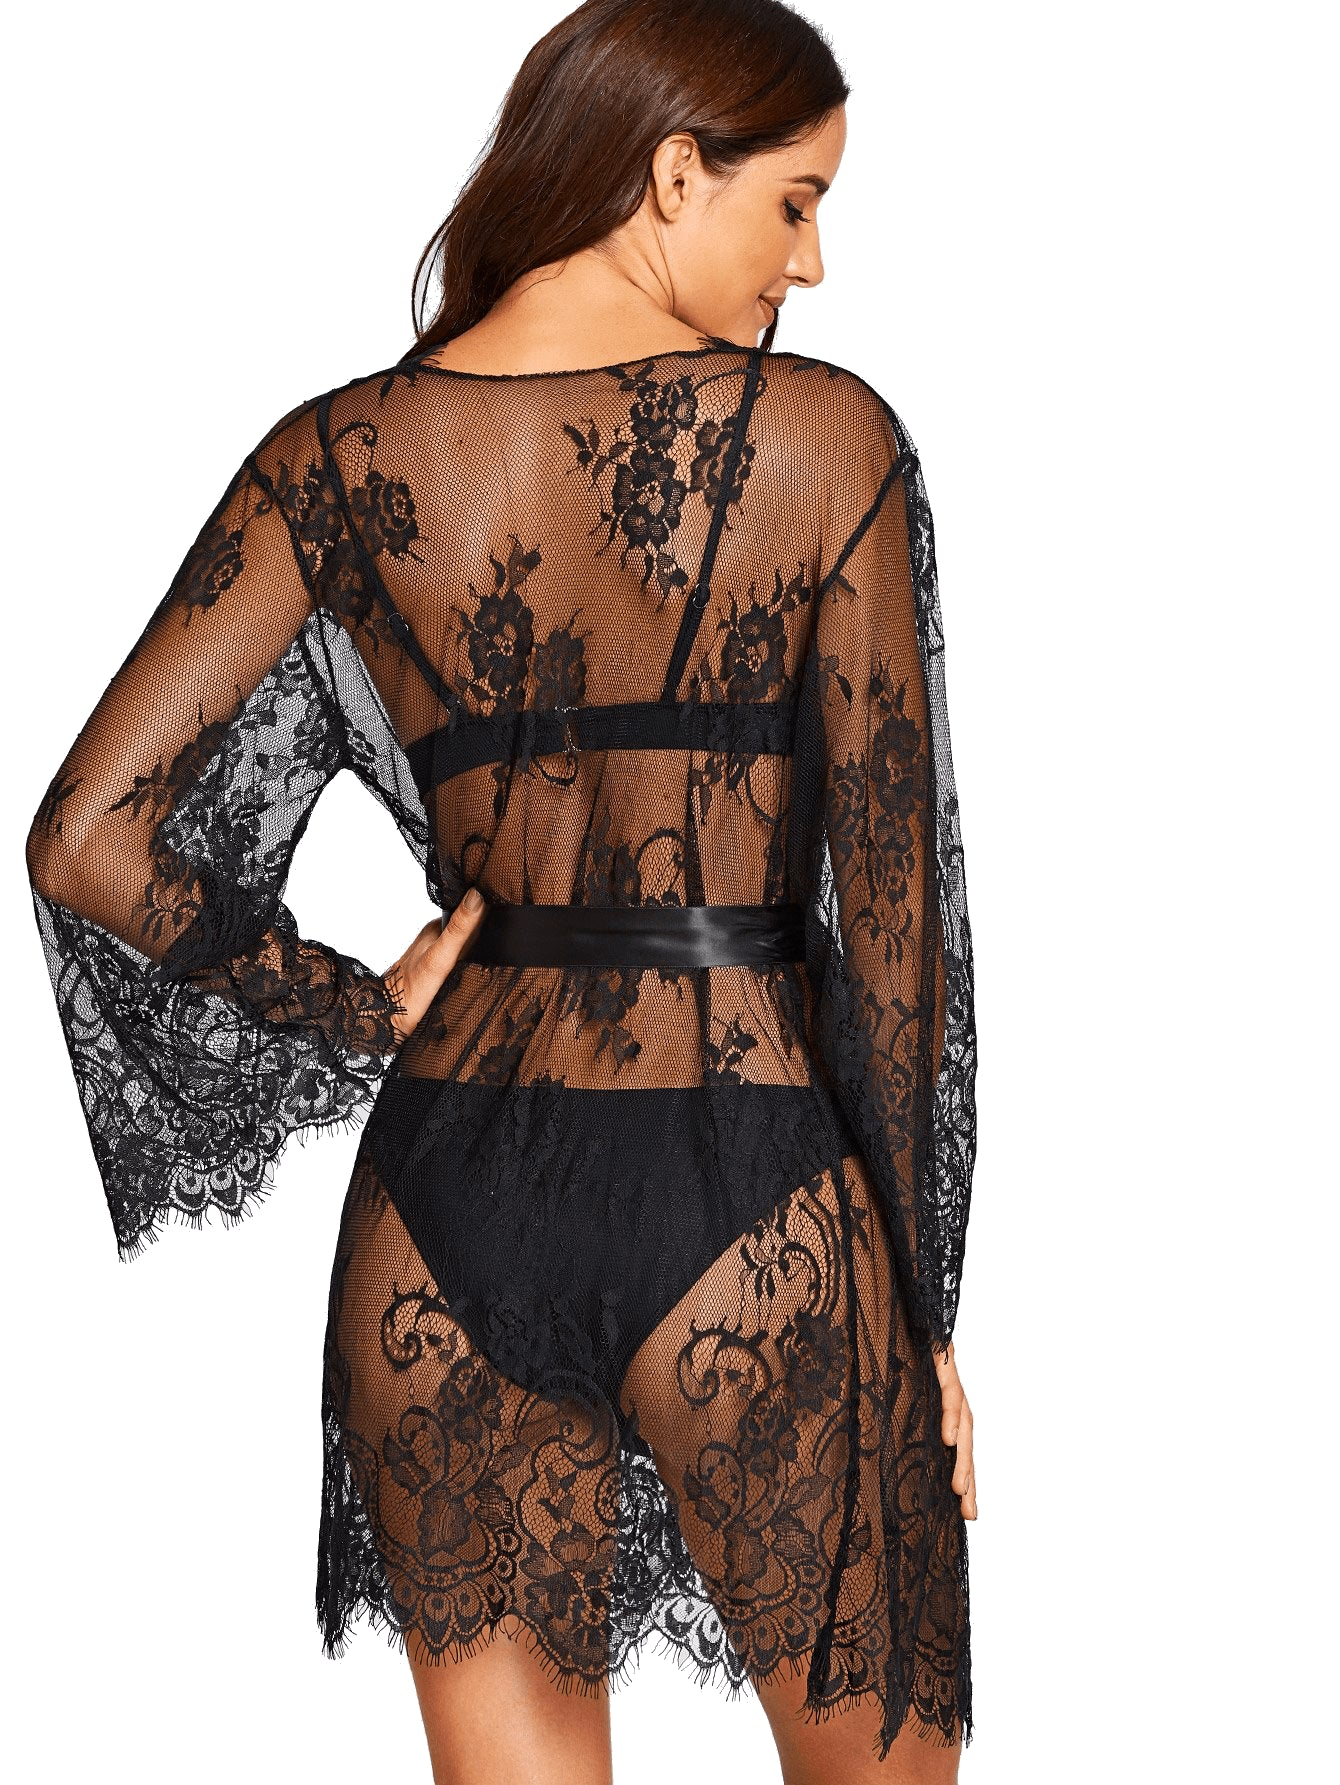 Dessert Lace Robe - Black